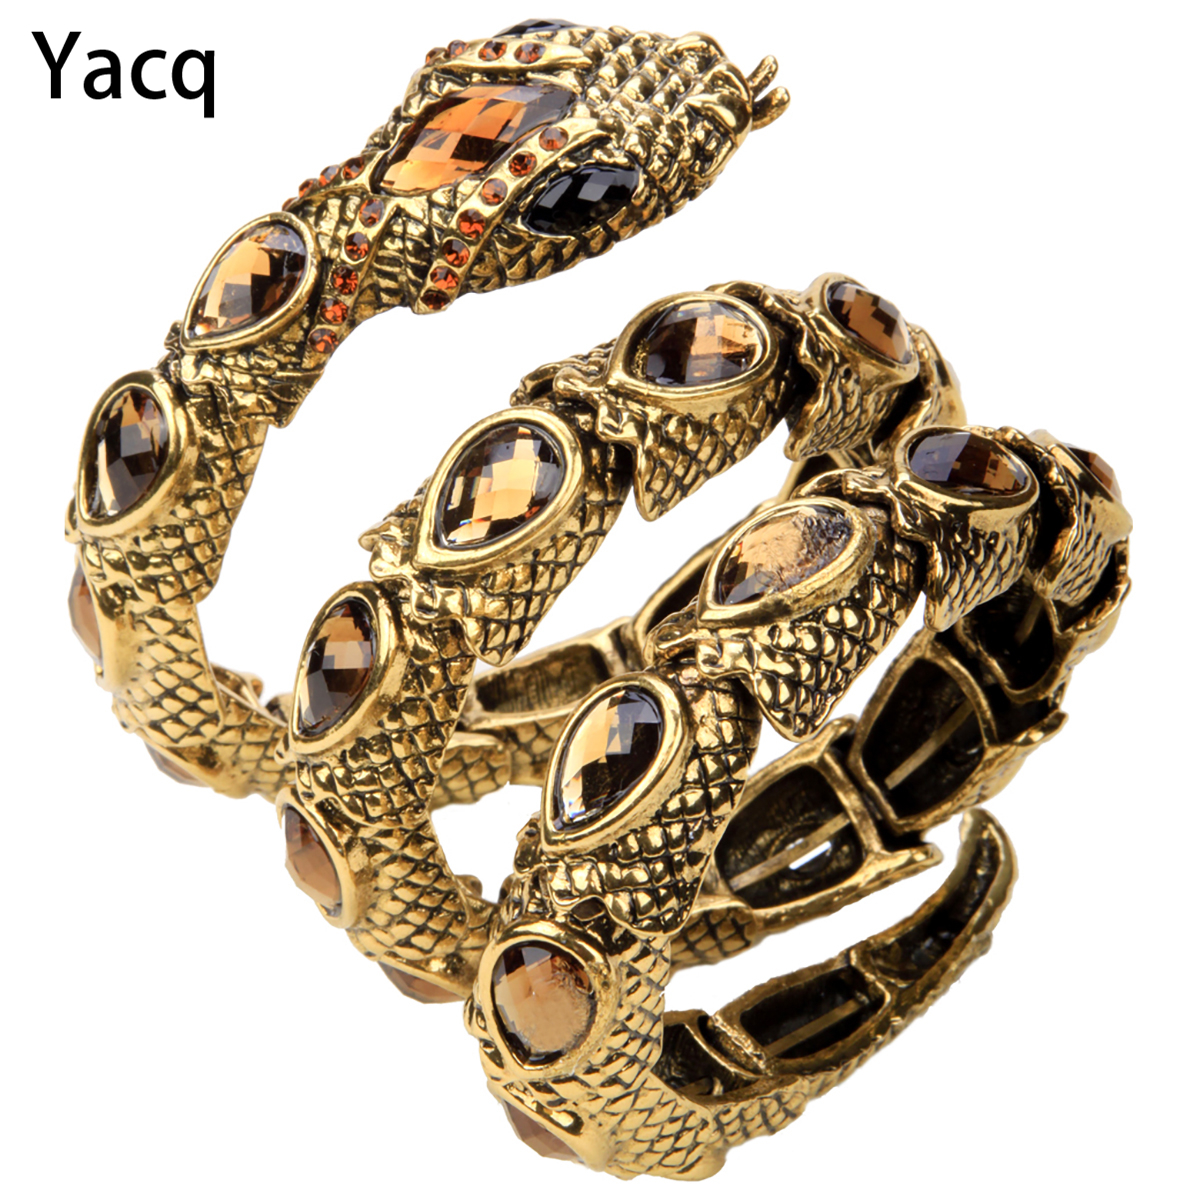 YACQ Stretch Brazalete Pulsera Brazalete Brazo Superior Mujeres Punk Rock Crystal Bangle Joyería Oro Color Plata Dropshipping A32